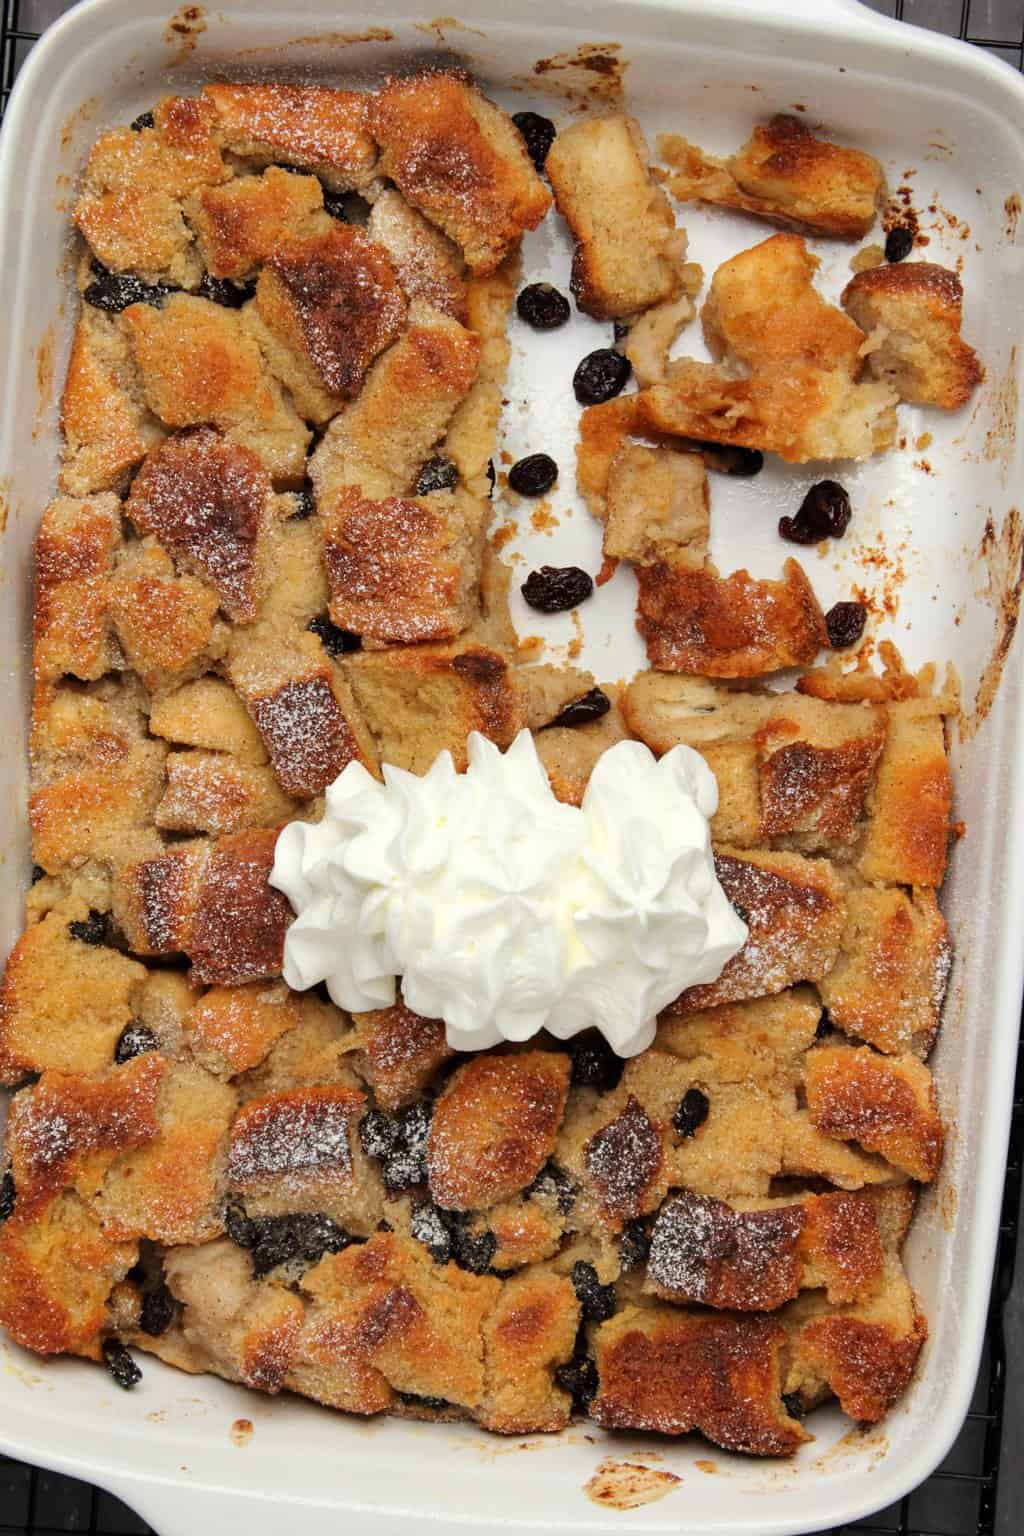 Vegan bread pudding topped with vegan cream in a white baking dish.